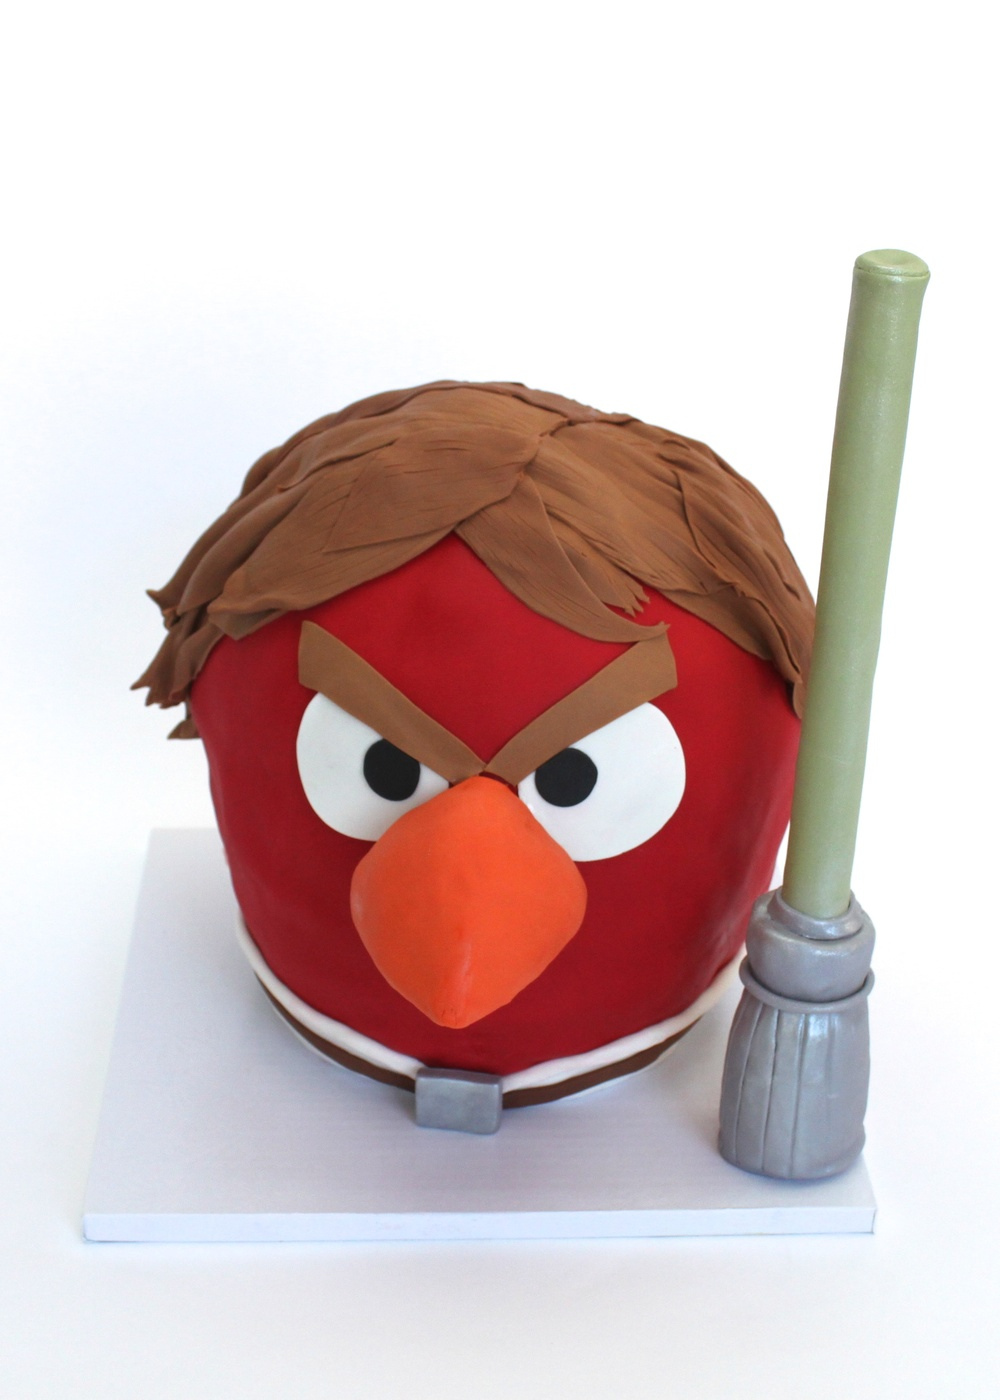 Angry bird luke skywalker 8608.jpg